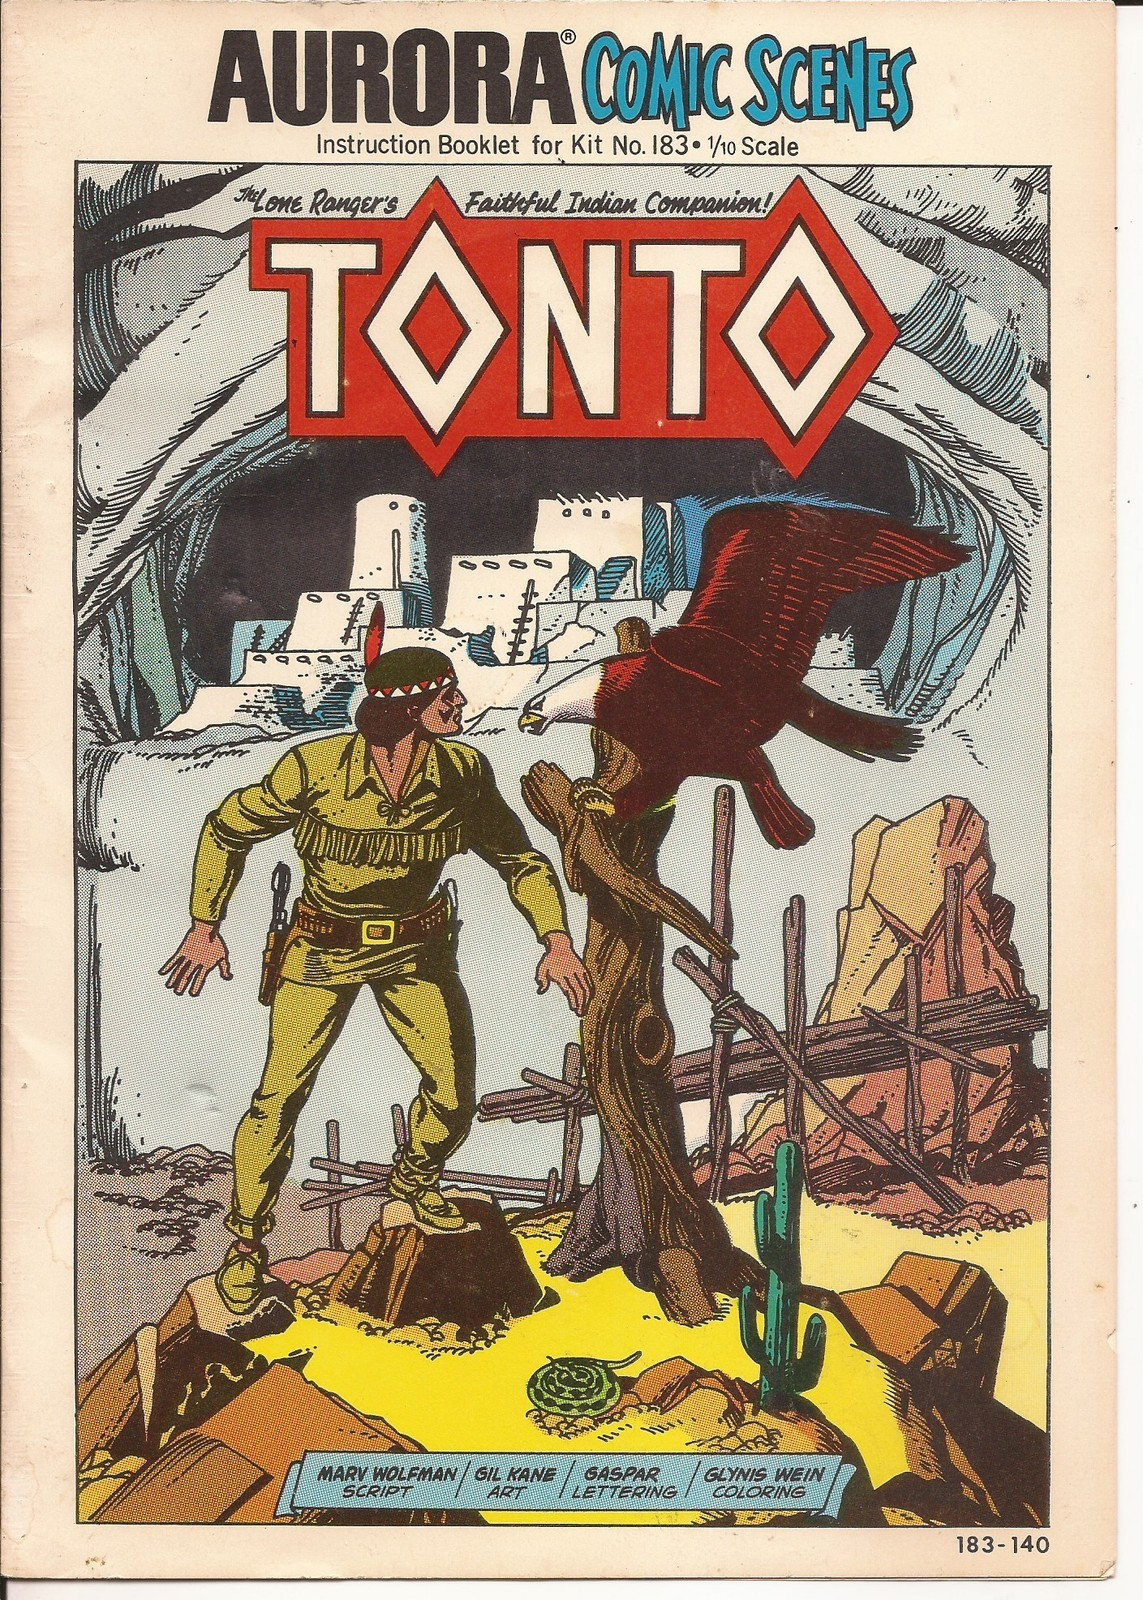 Primary image for Aurora Comic Scenes Tonto Instruction Booklet for Kit #183 Lone Ranger Sidekick